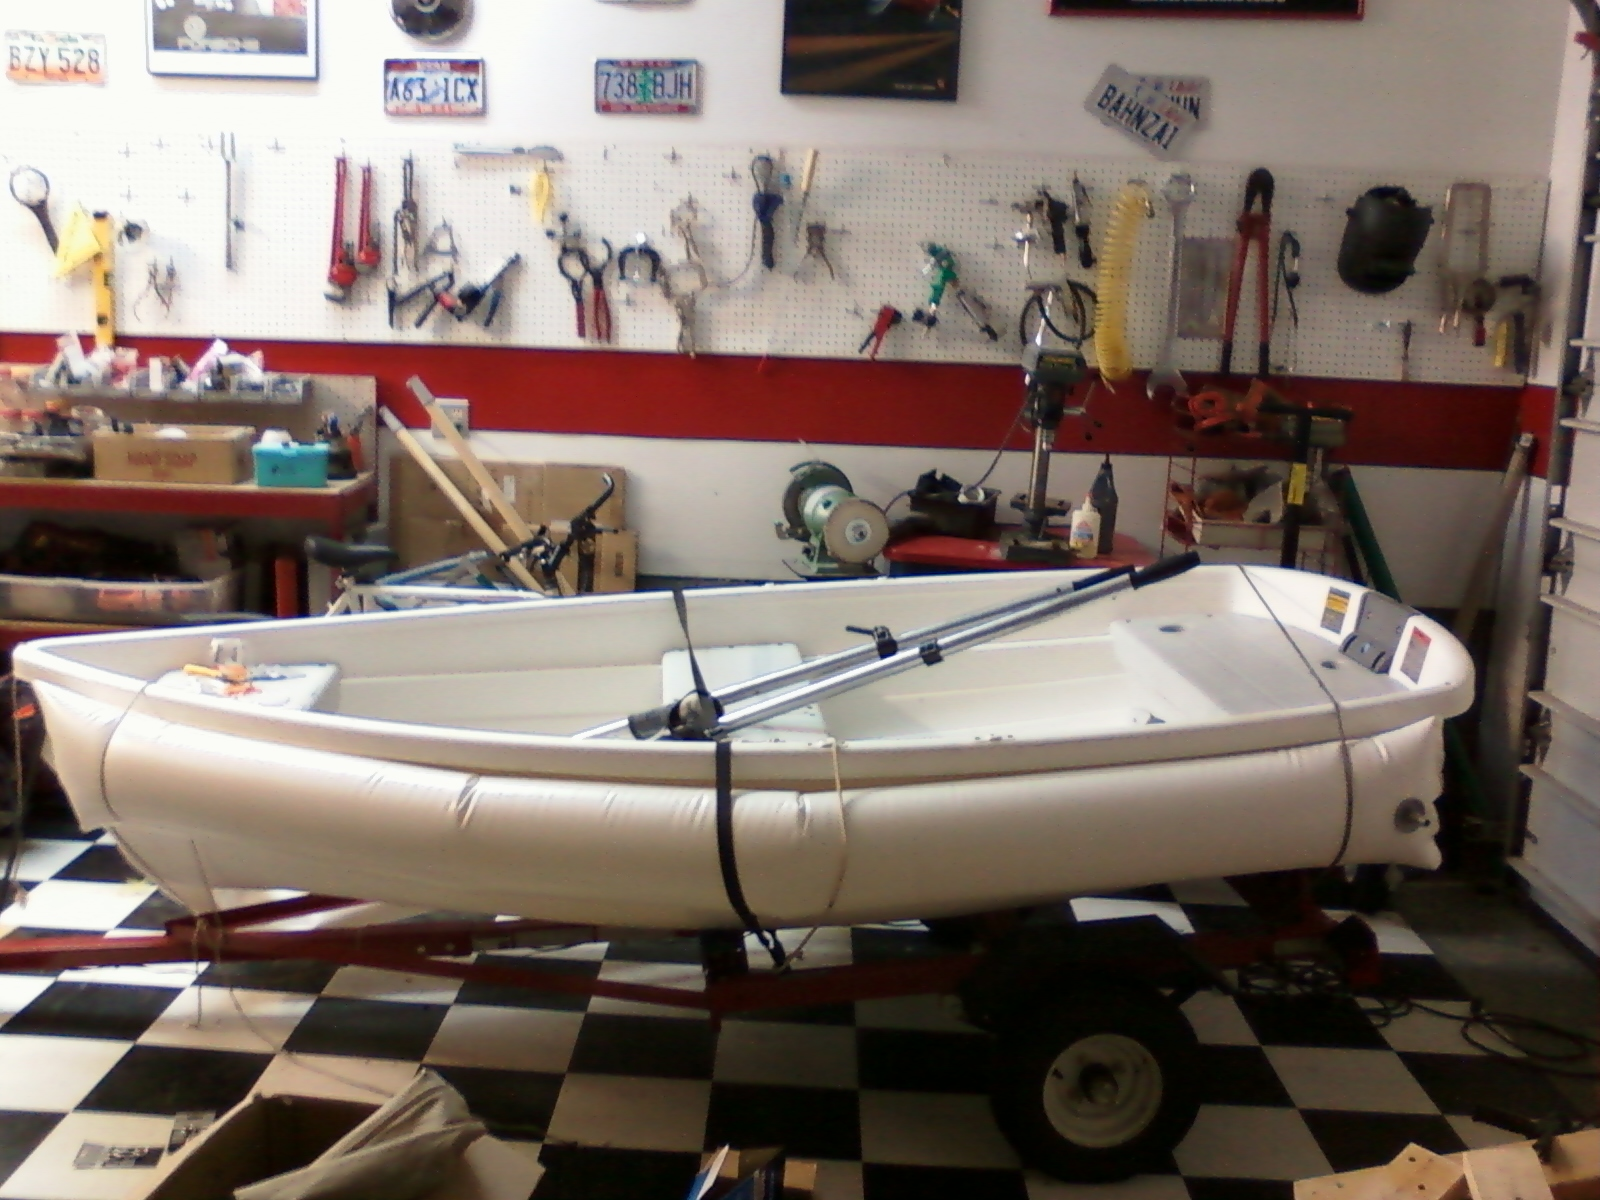 Diy Rib Kit For Dinghy